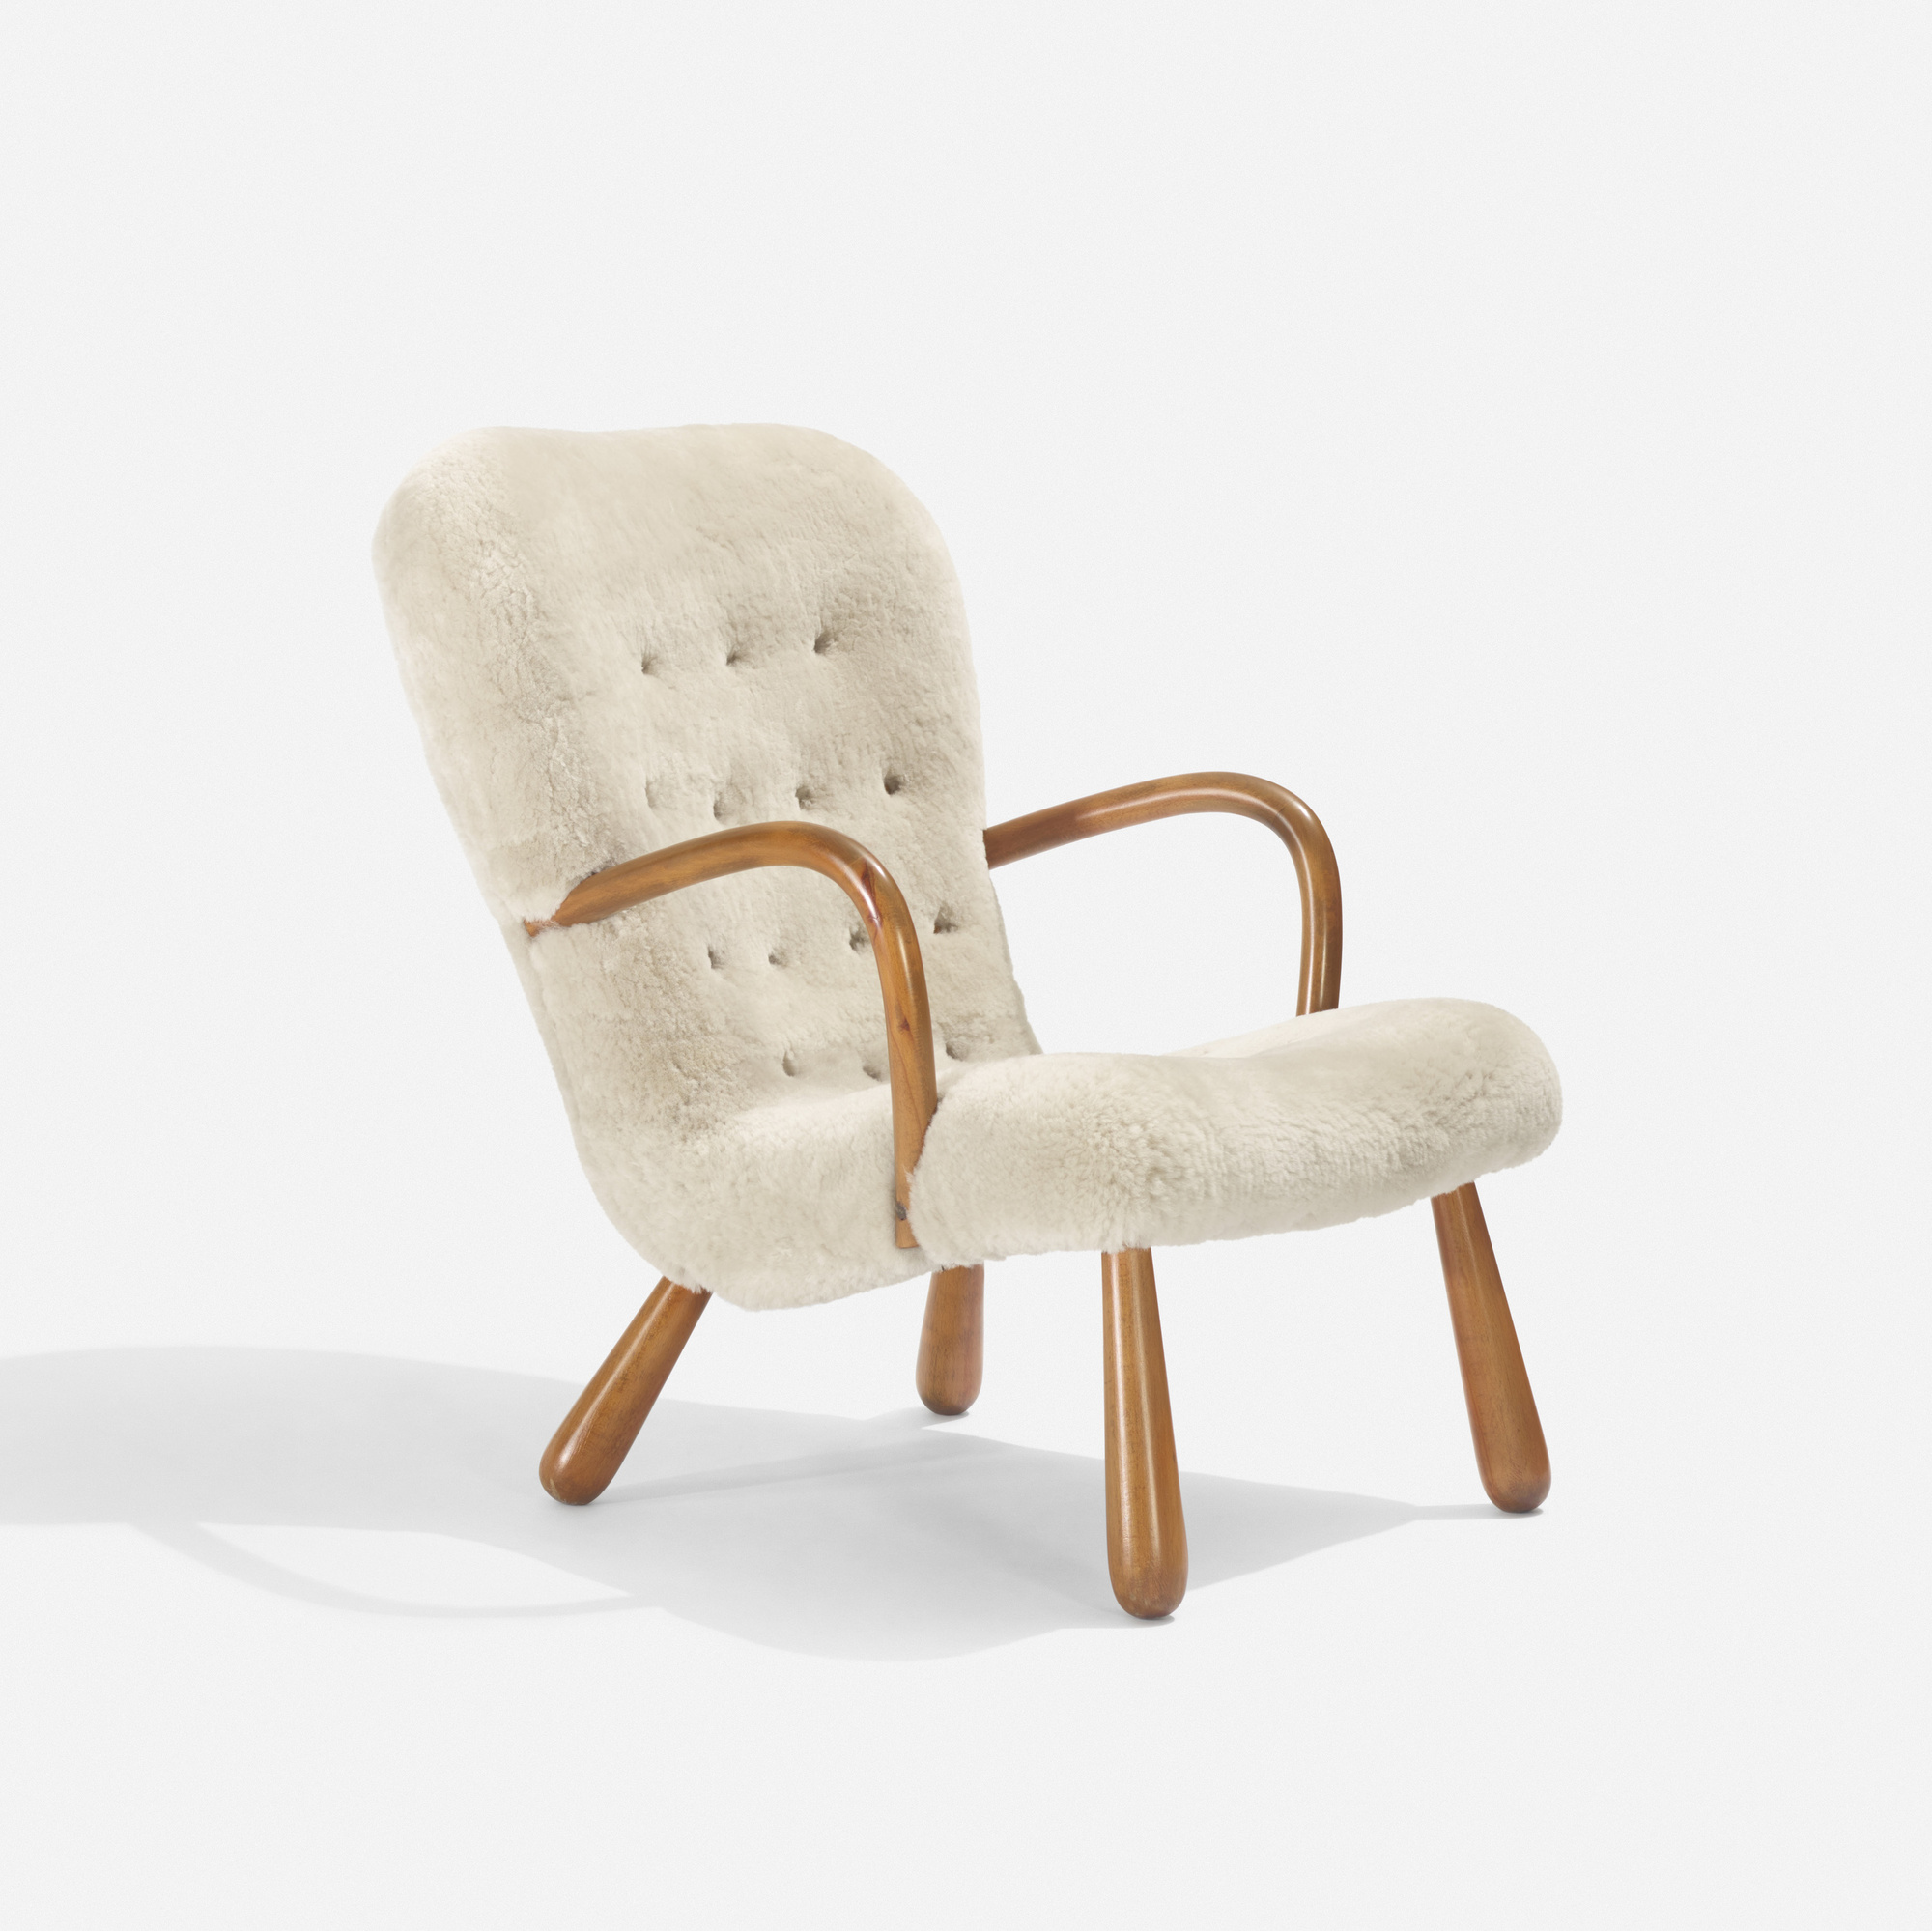 104: Philip Arctander / lounge chair (1 of 2)